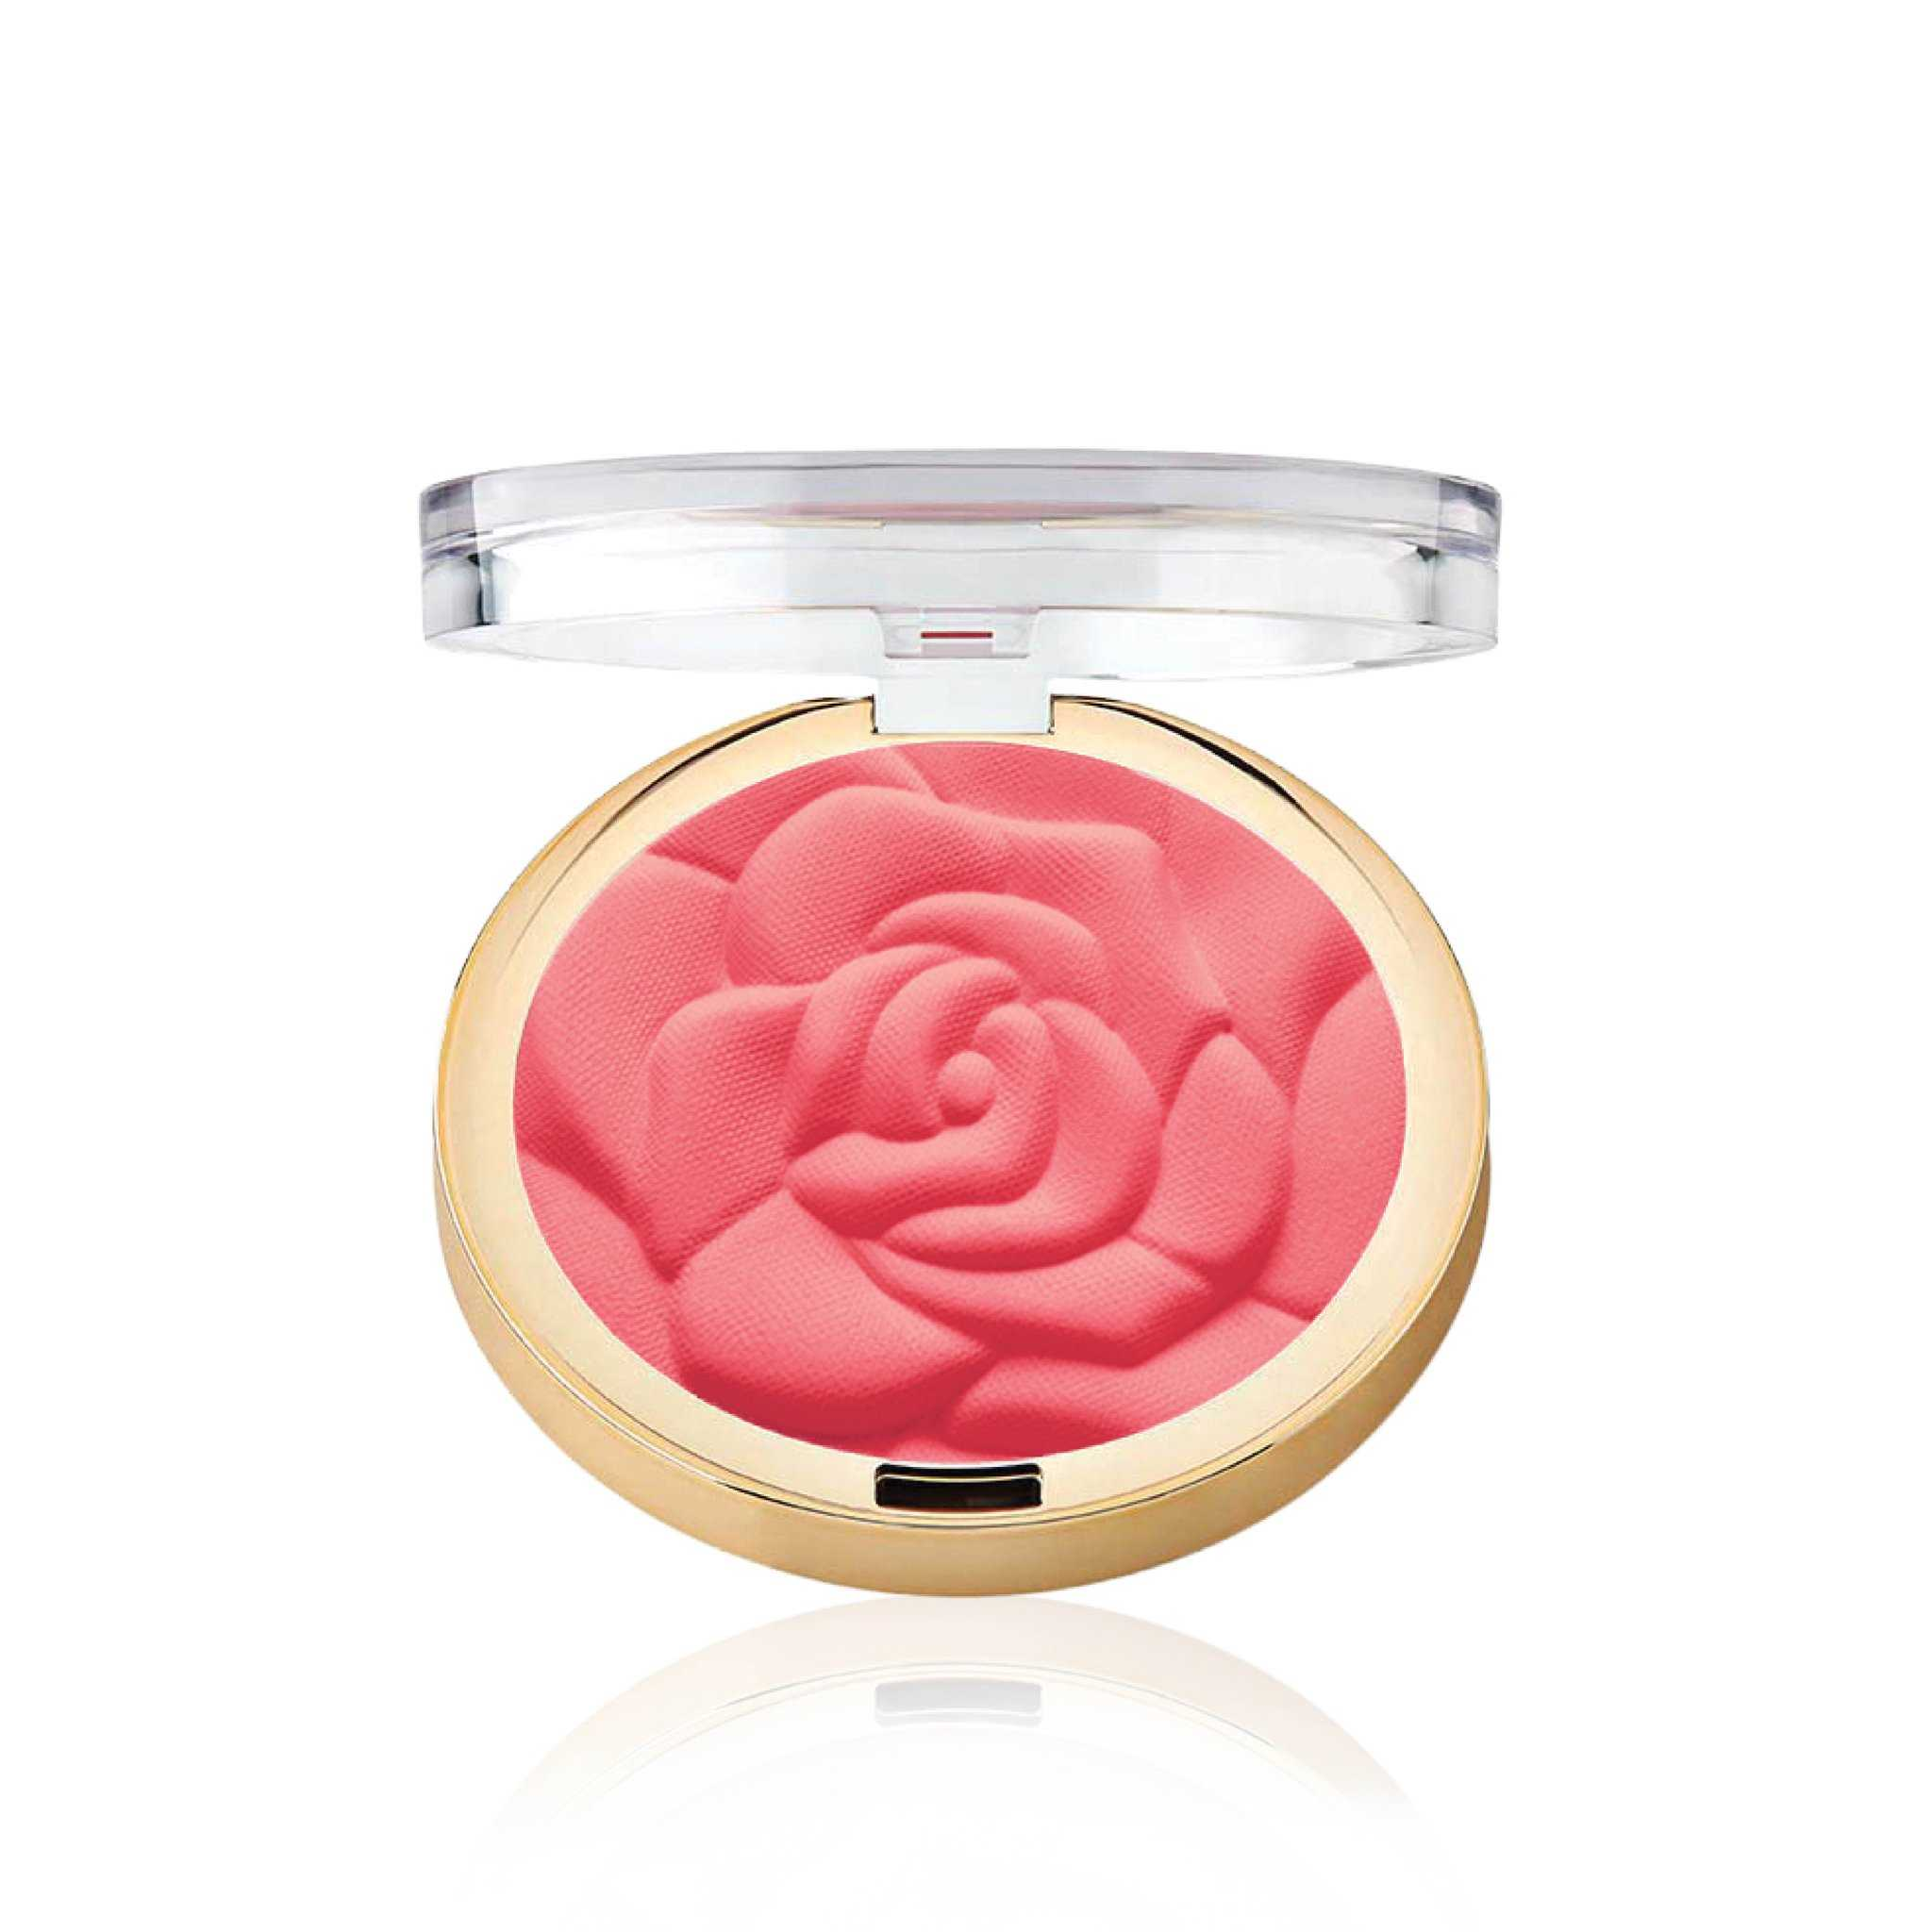 Milani - Rose Powder Blush -05 CORAL COVE